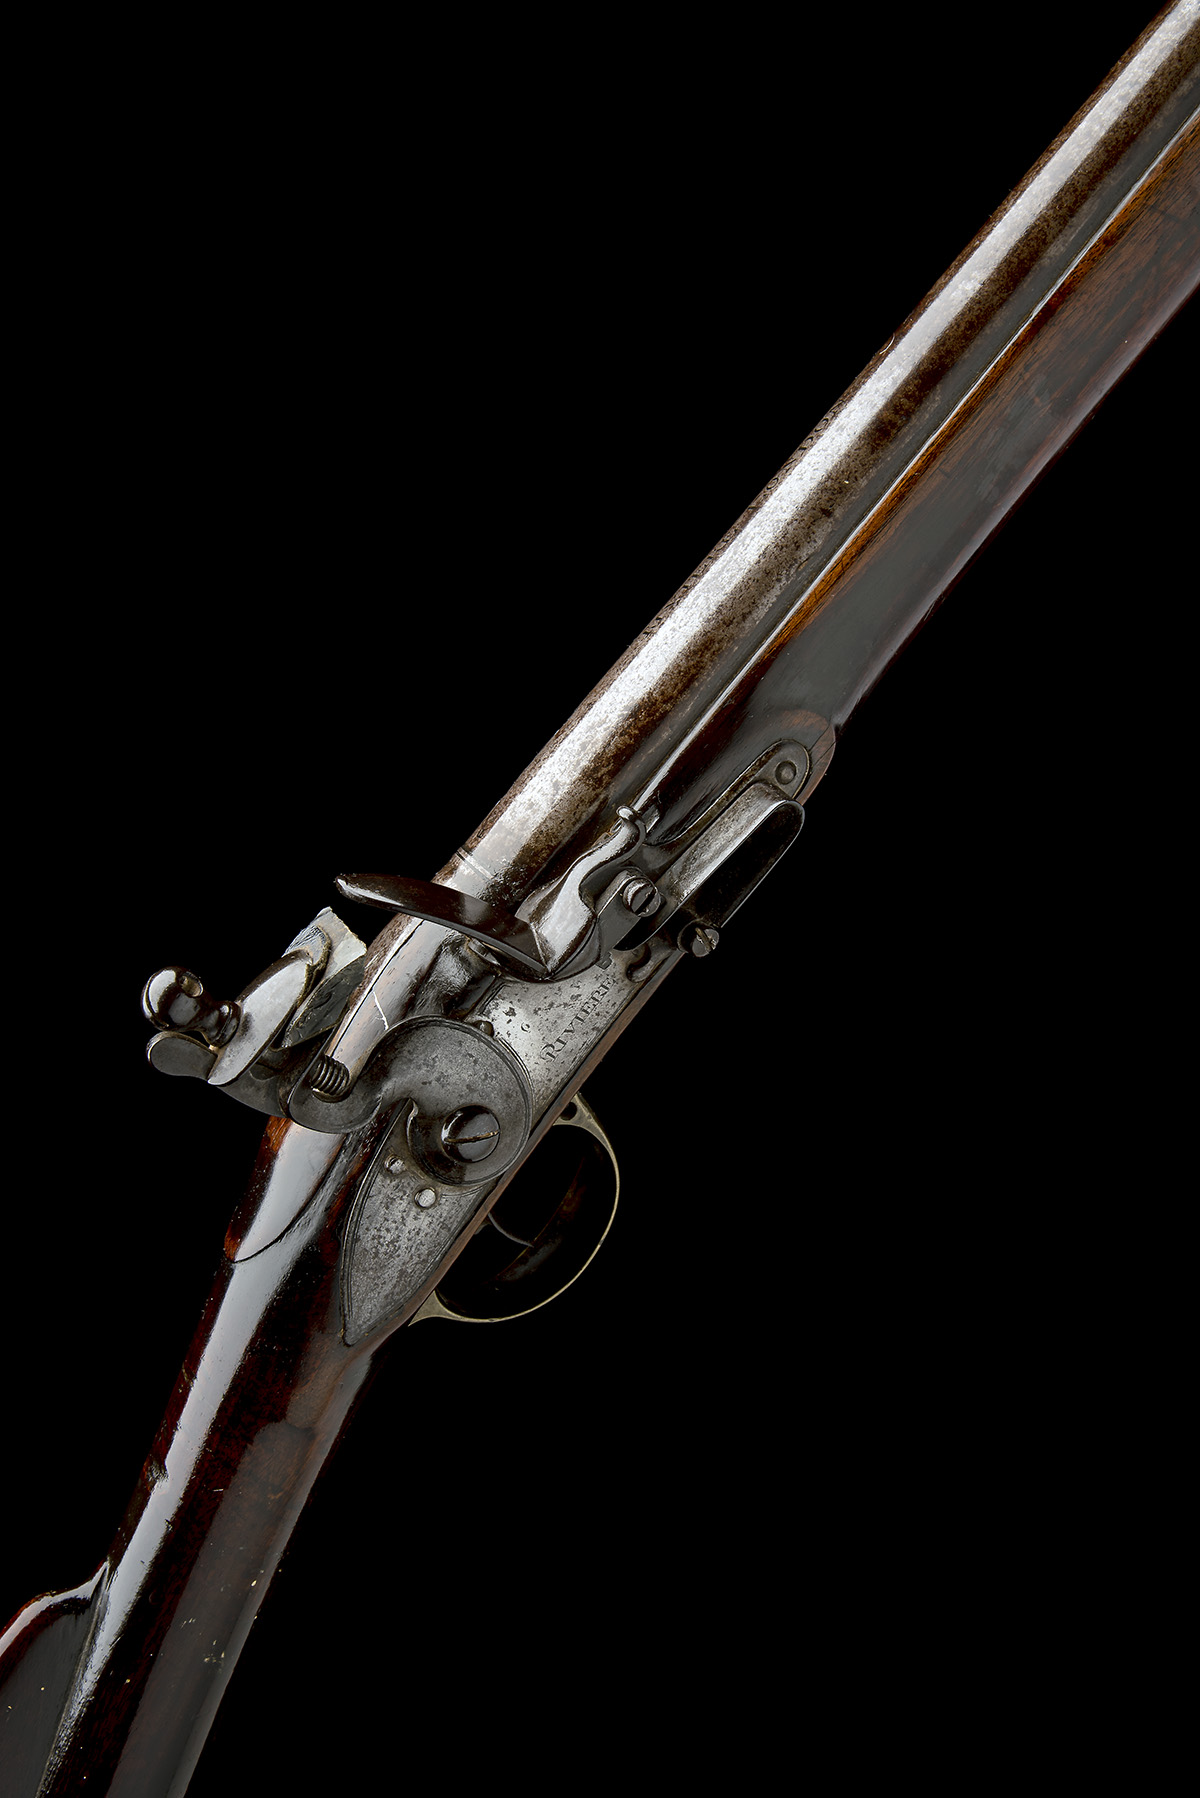 RIVIERE, LONDON A GOOD .750 FLINTLOCK MUSKET, MODEL 'INDIA PATTERN BROWN BESS', rack no. 4, WITH